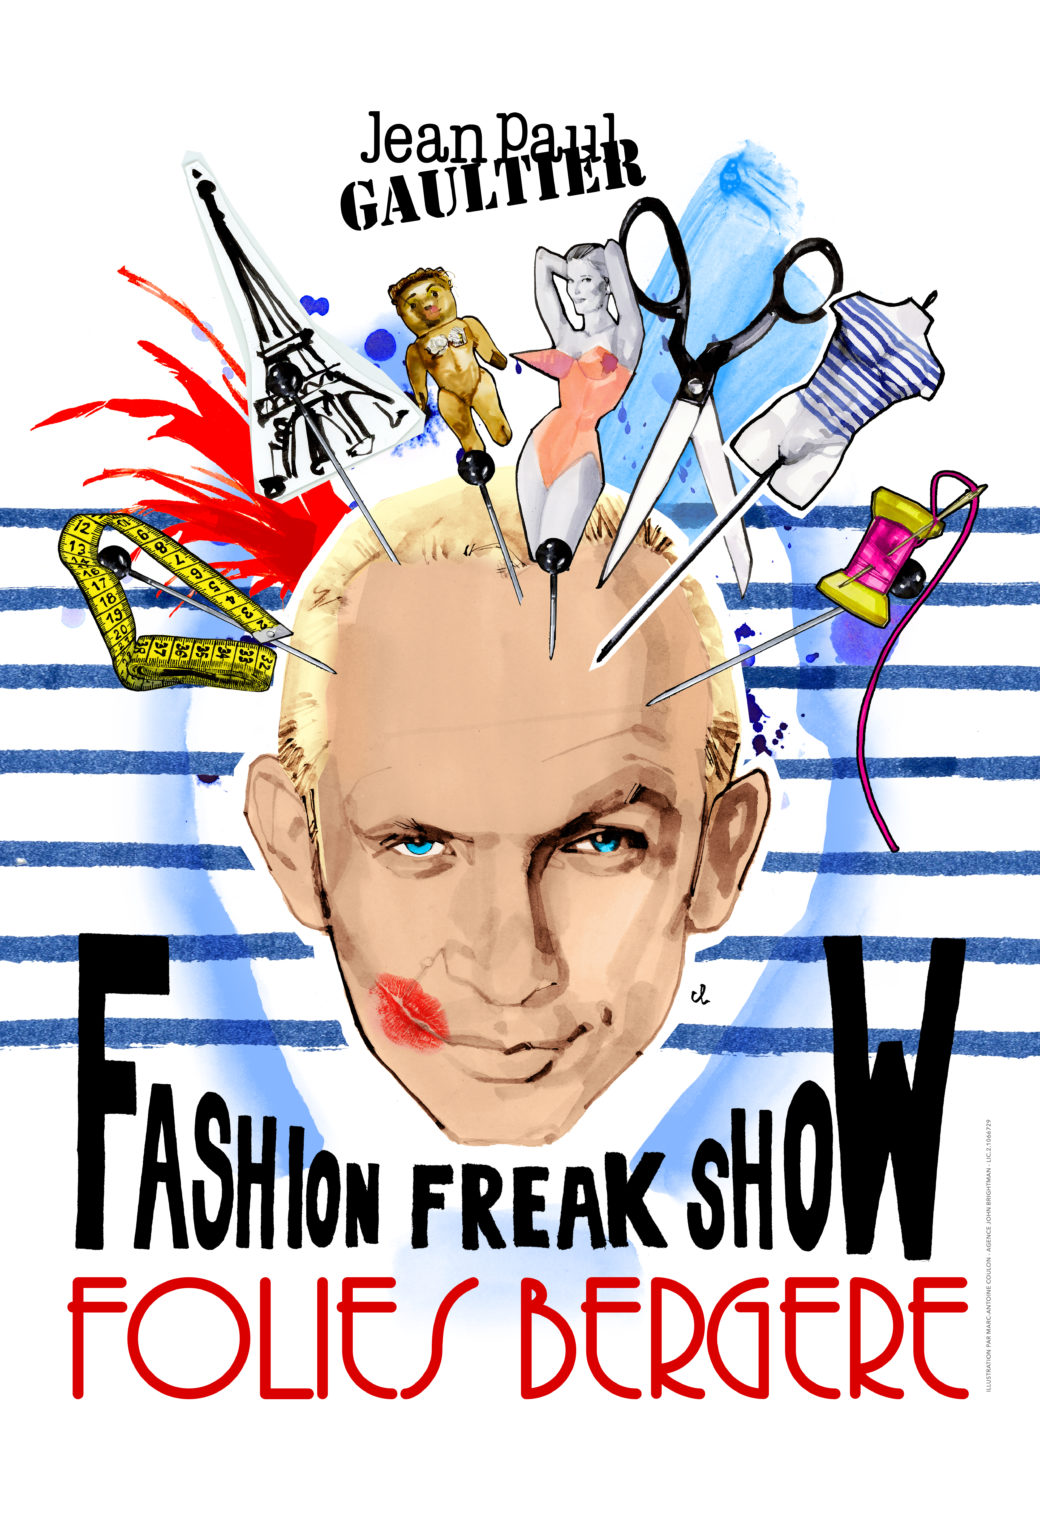 Fashion freak show Jean Paul GAULTIER